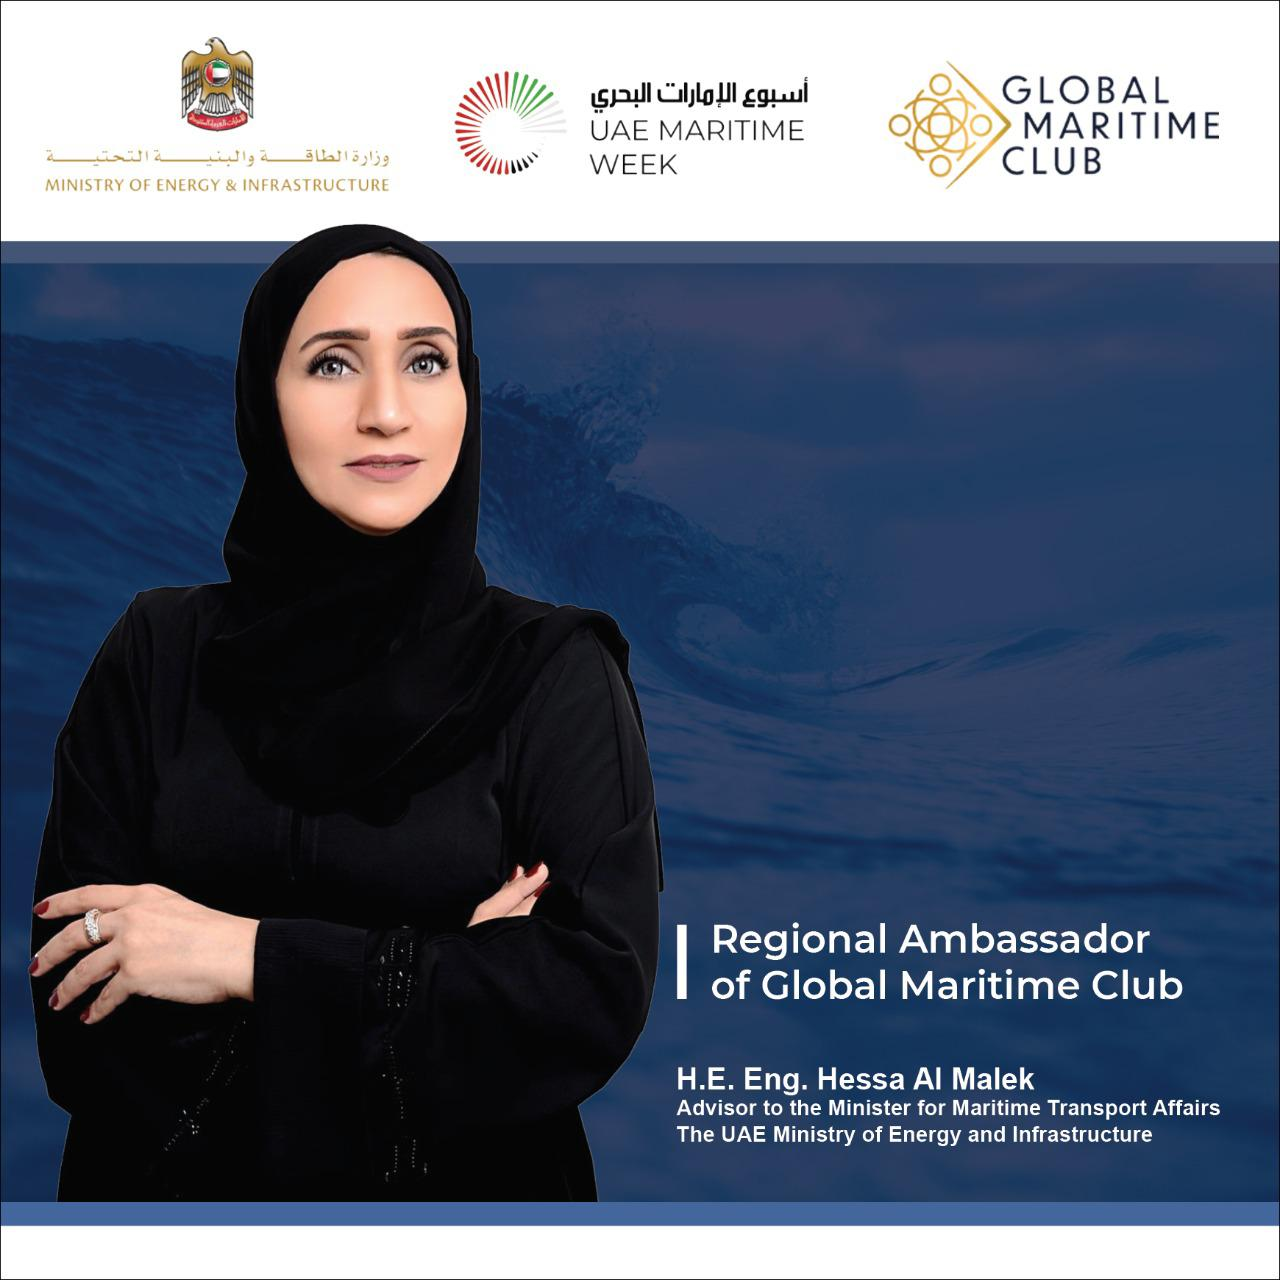 AWIMA congrats H.E Eng.Hessa AlMalek for being selected as Regional Ambassador for Global Maritime Club by Seatrade International